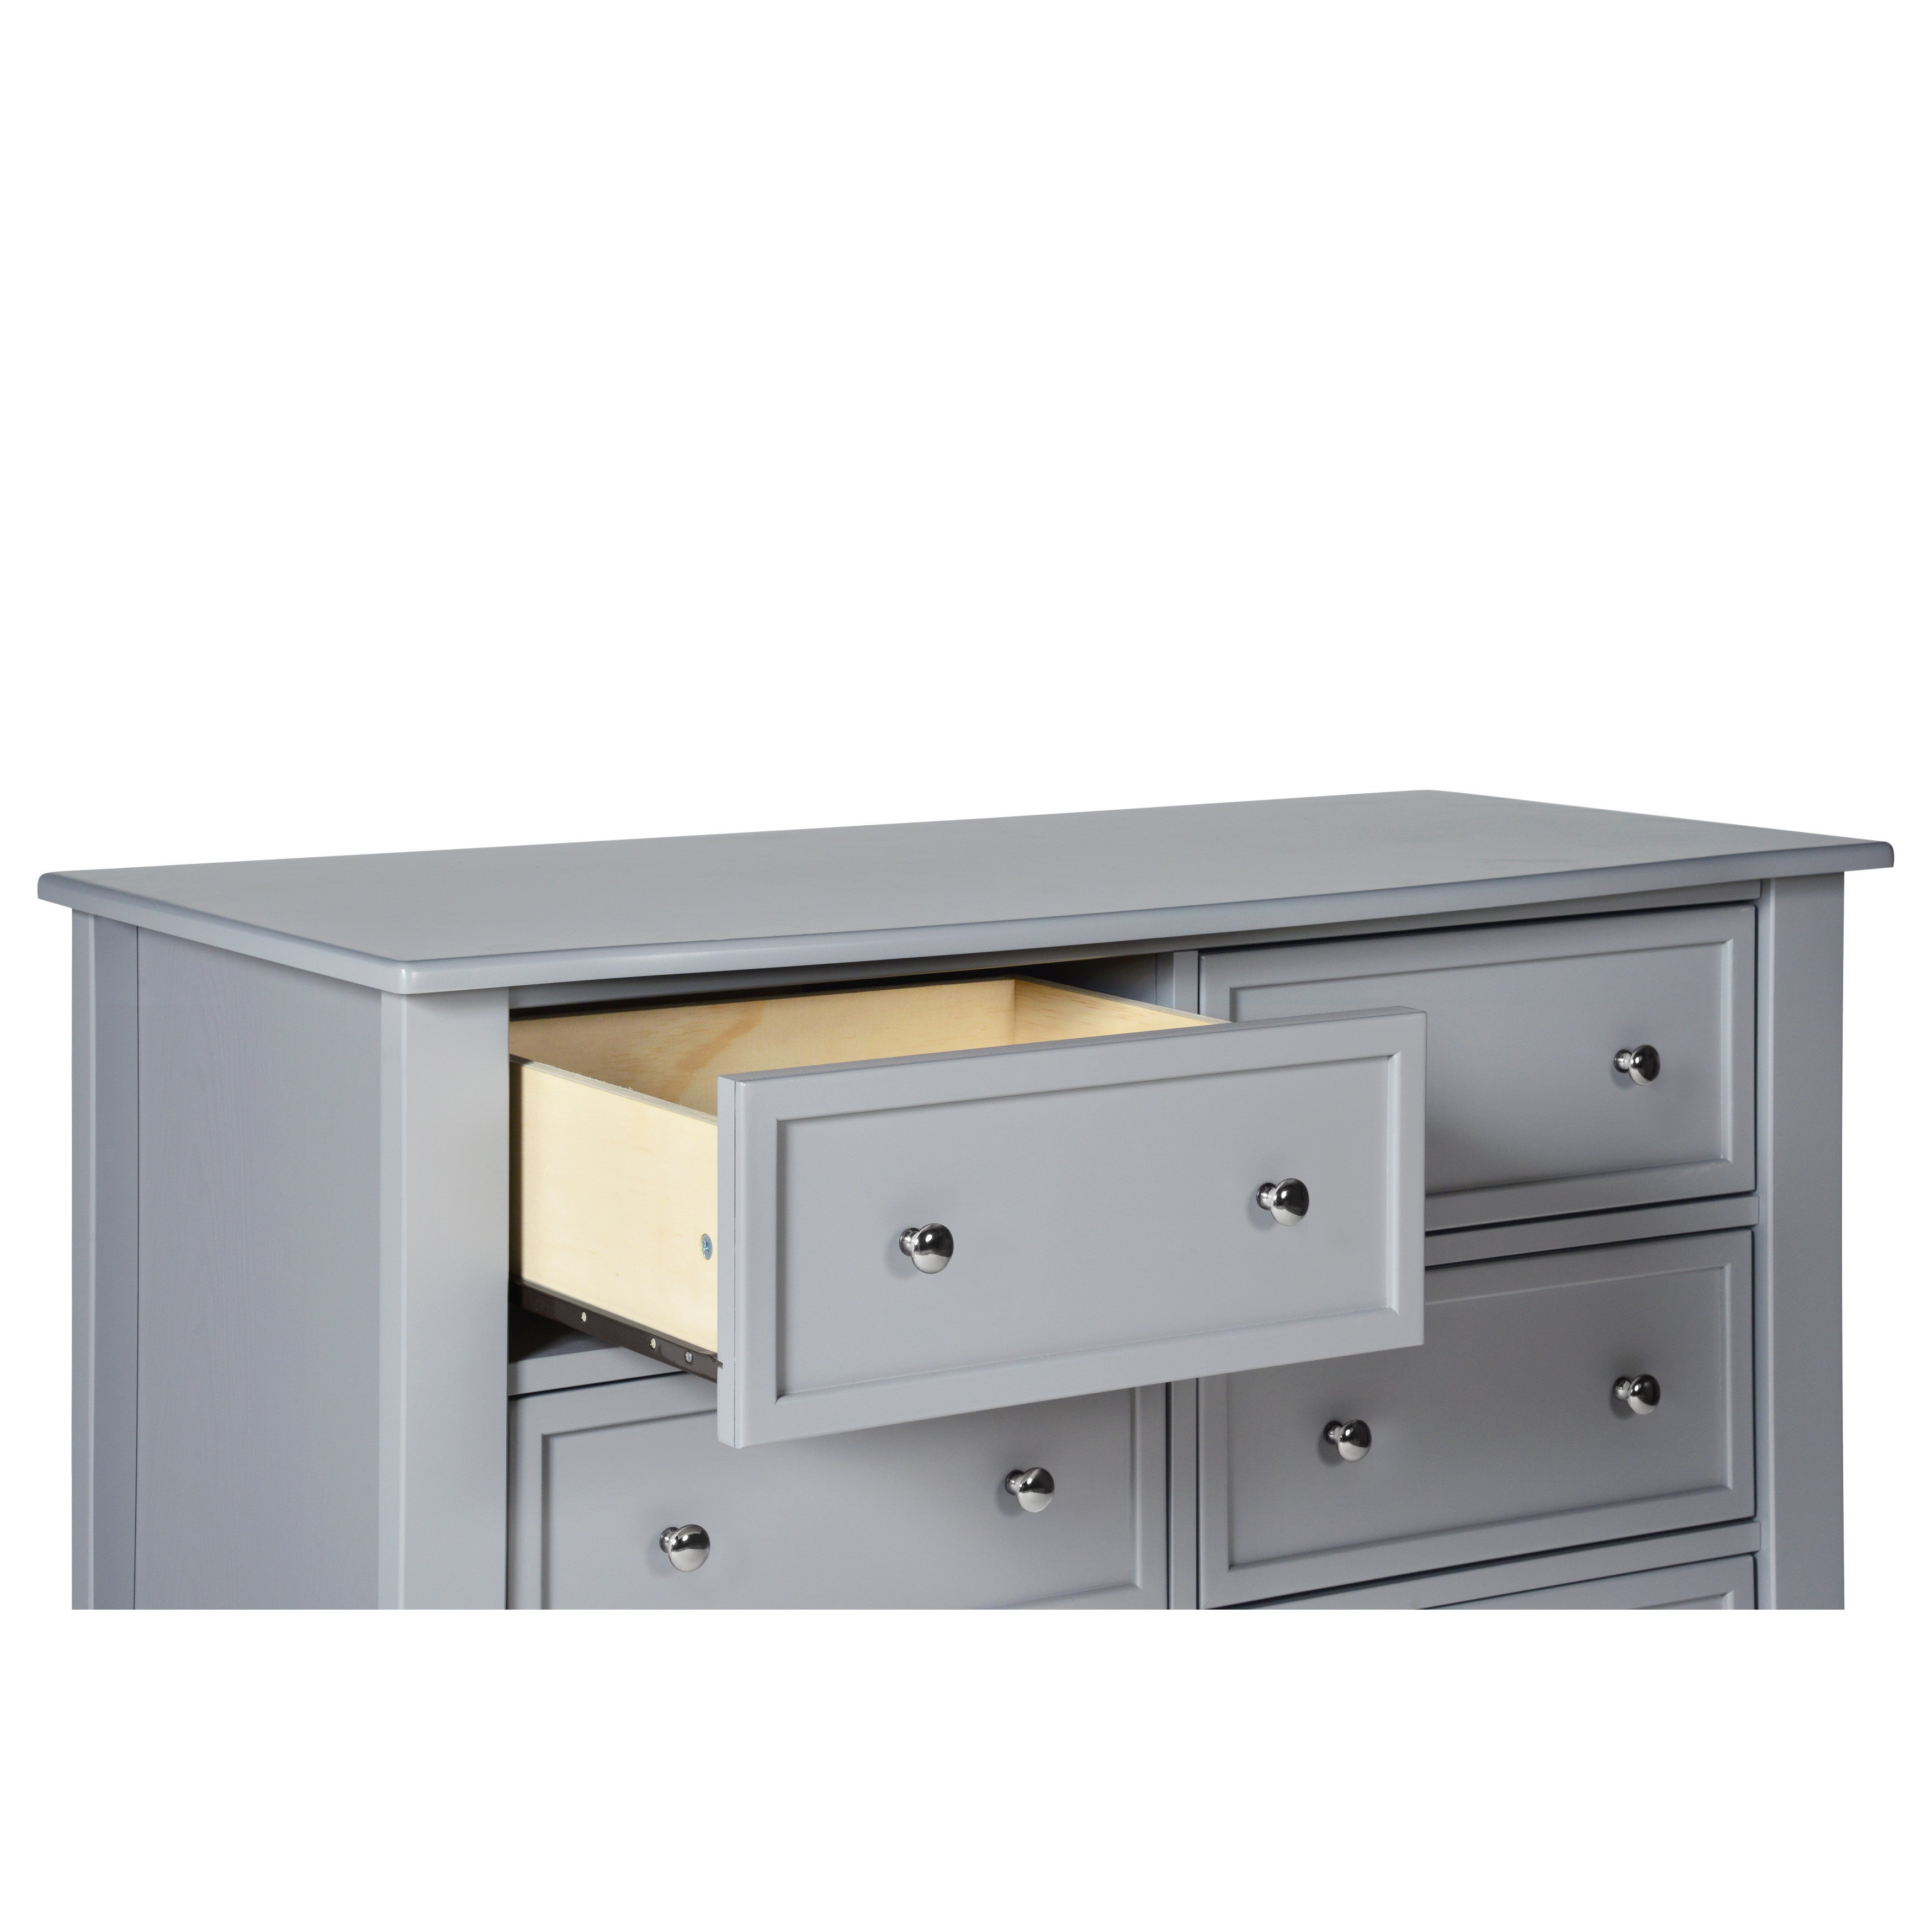 shipping free product home dresser garden today davinci overstock drawer changer kalani